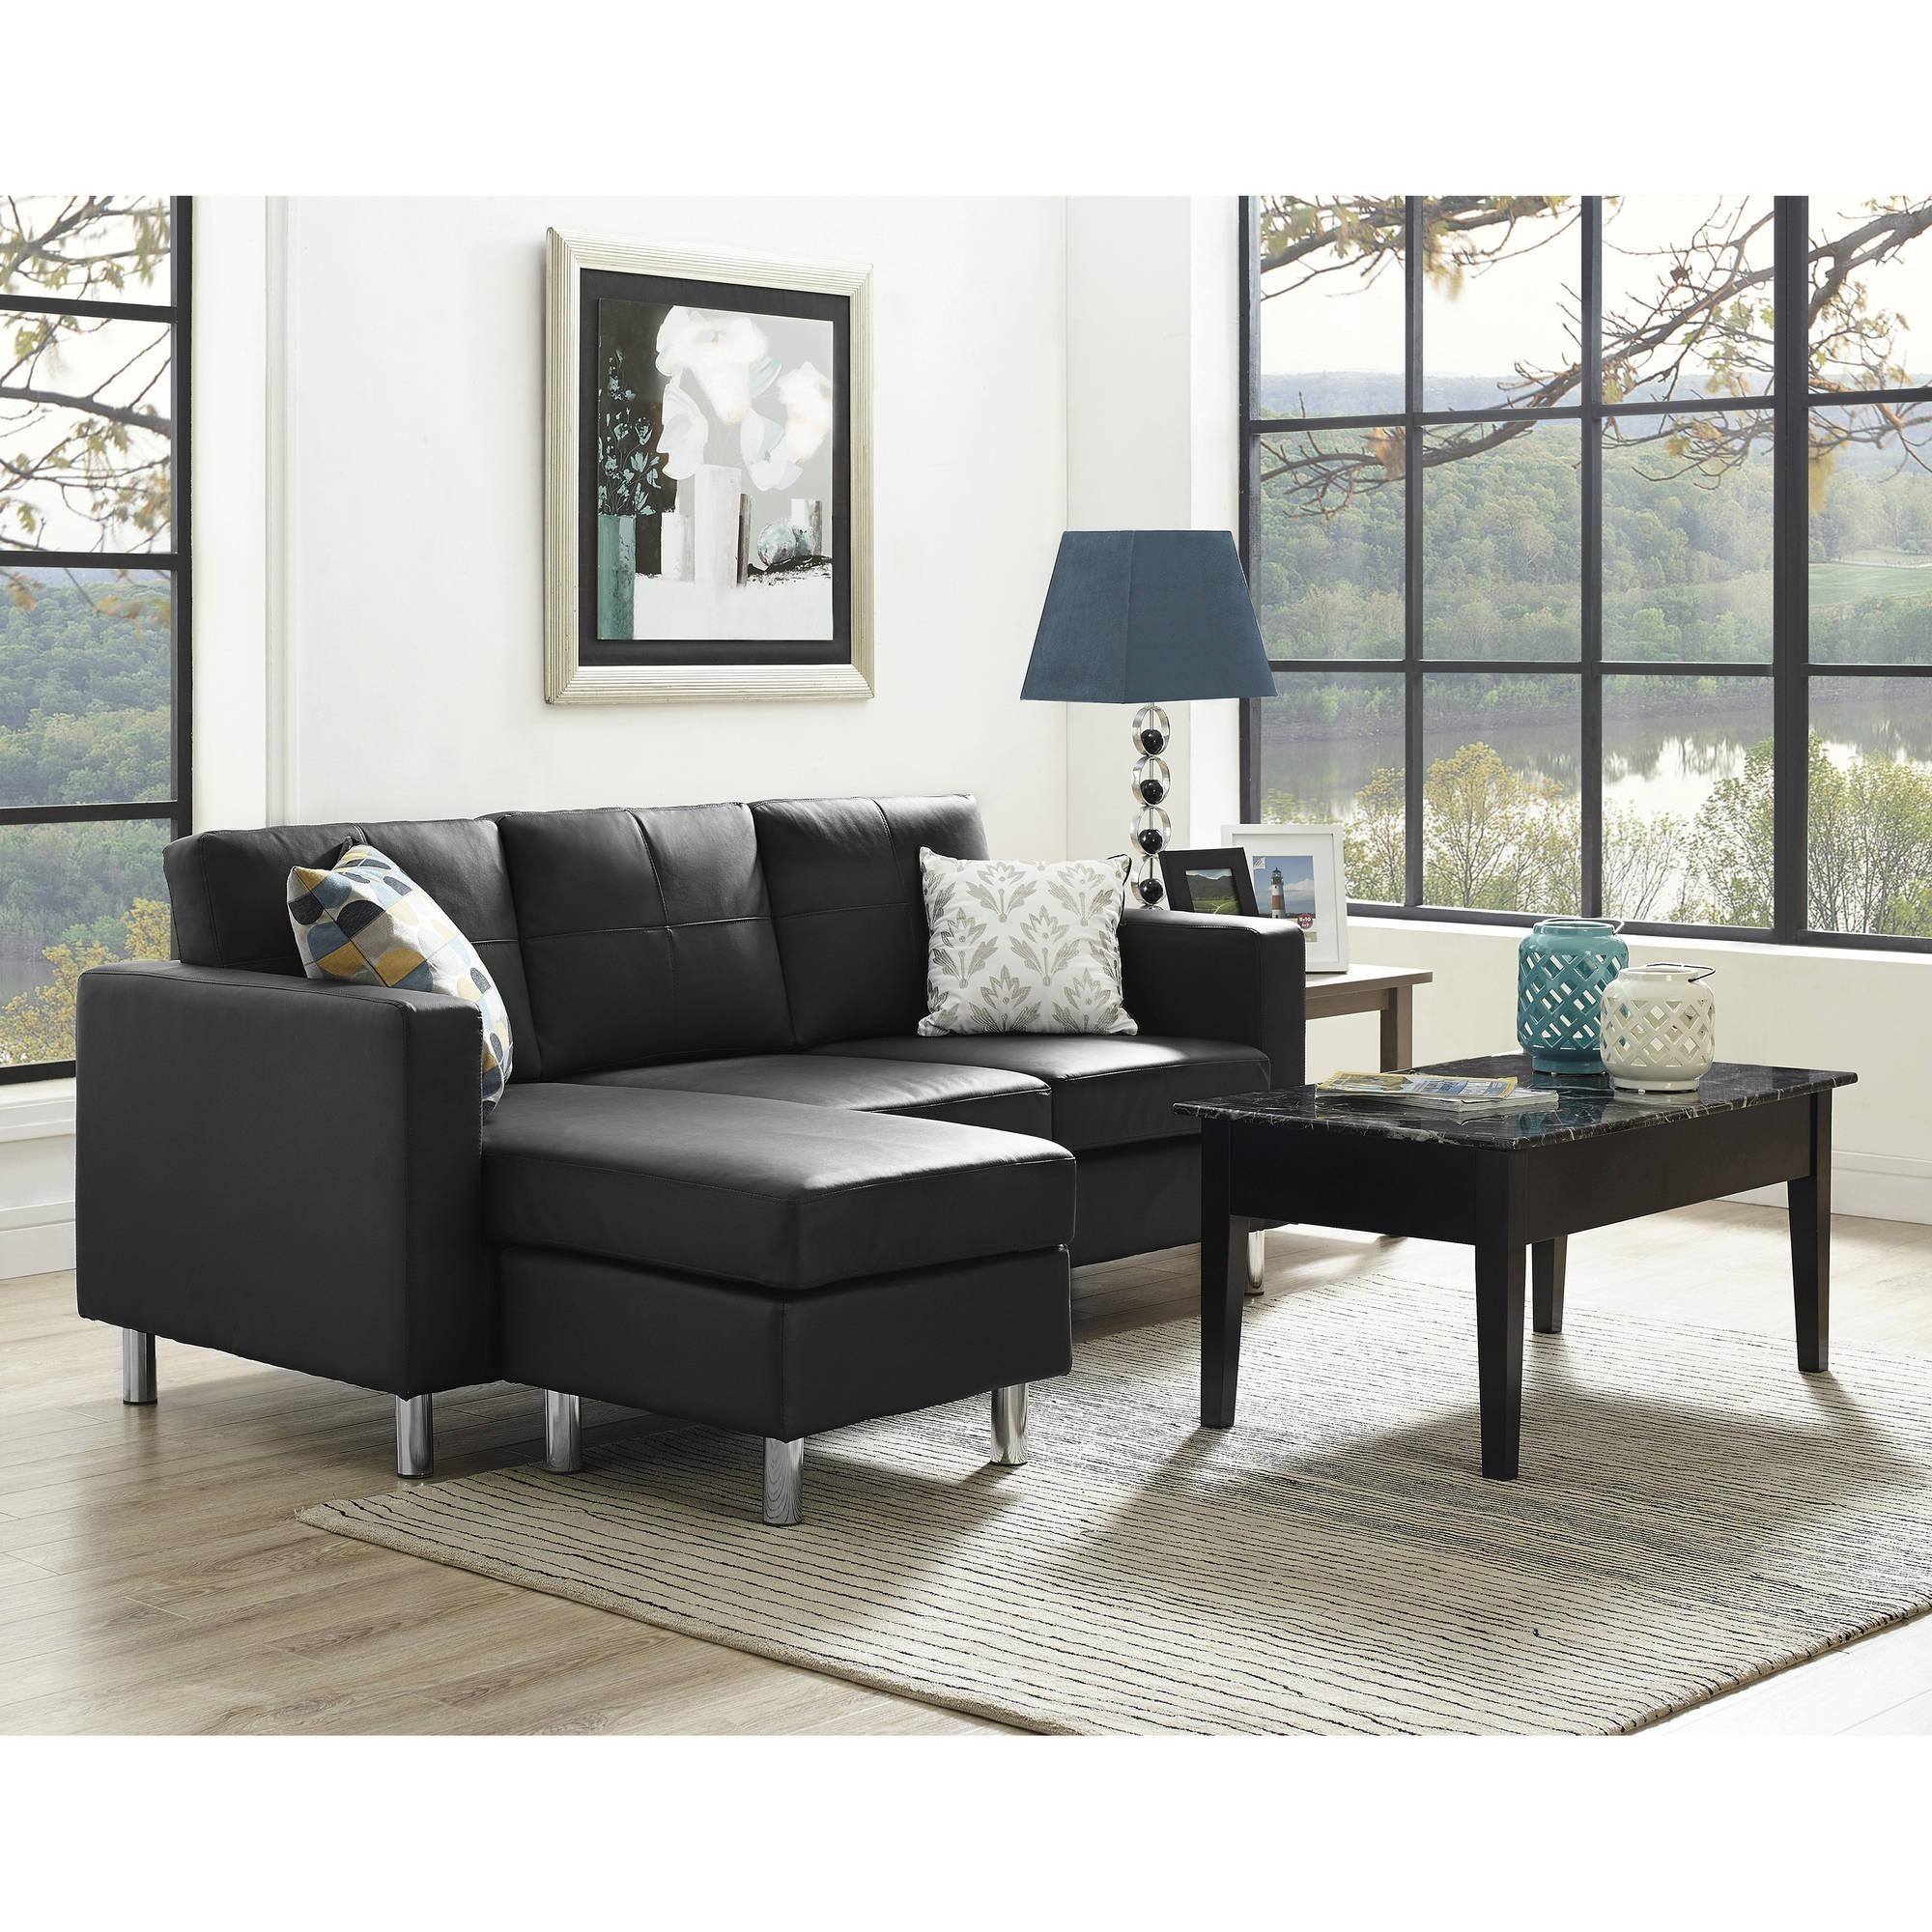 Furniture & Sofa: Perfect Small Spaces Configurable Sectional Sofa Regarding Sectional Sofas For Small Spaces With Recliners (Image 2 of 20)